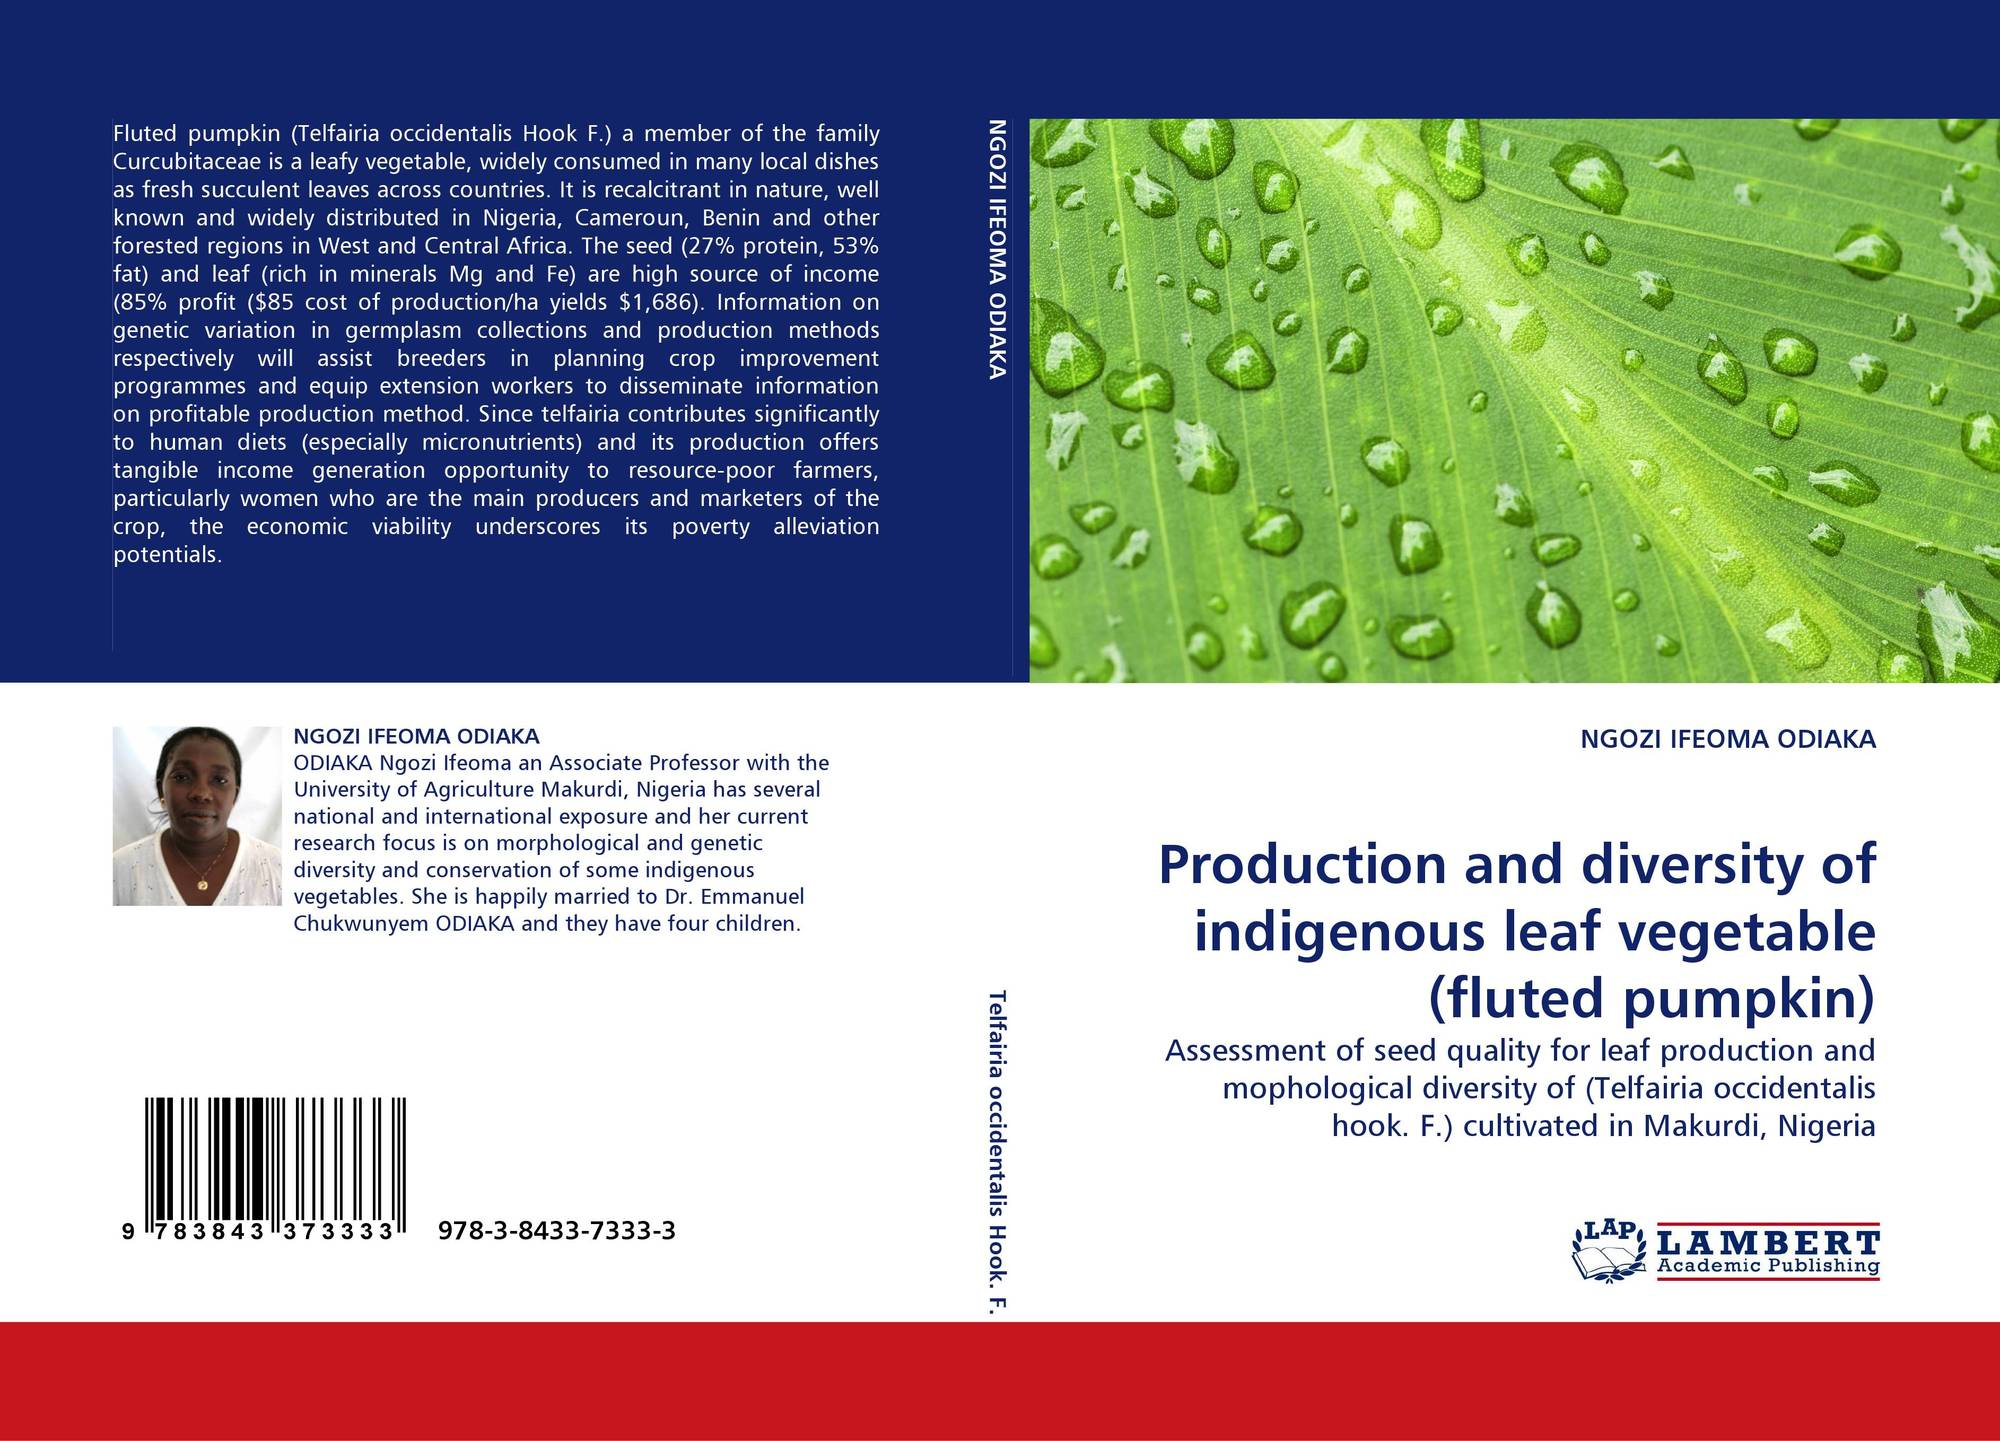 Production And Diversity Of Indigenous Leaf Vegetable